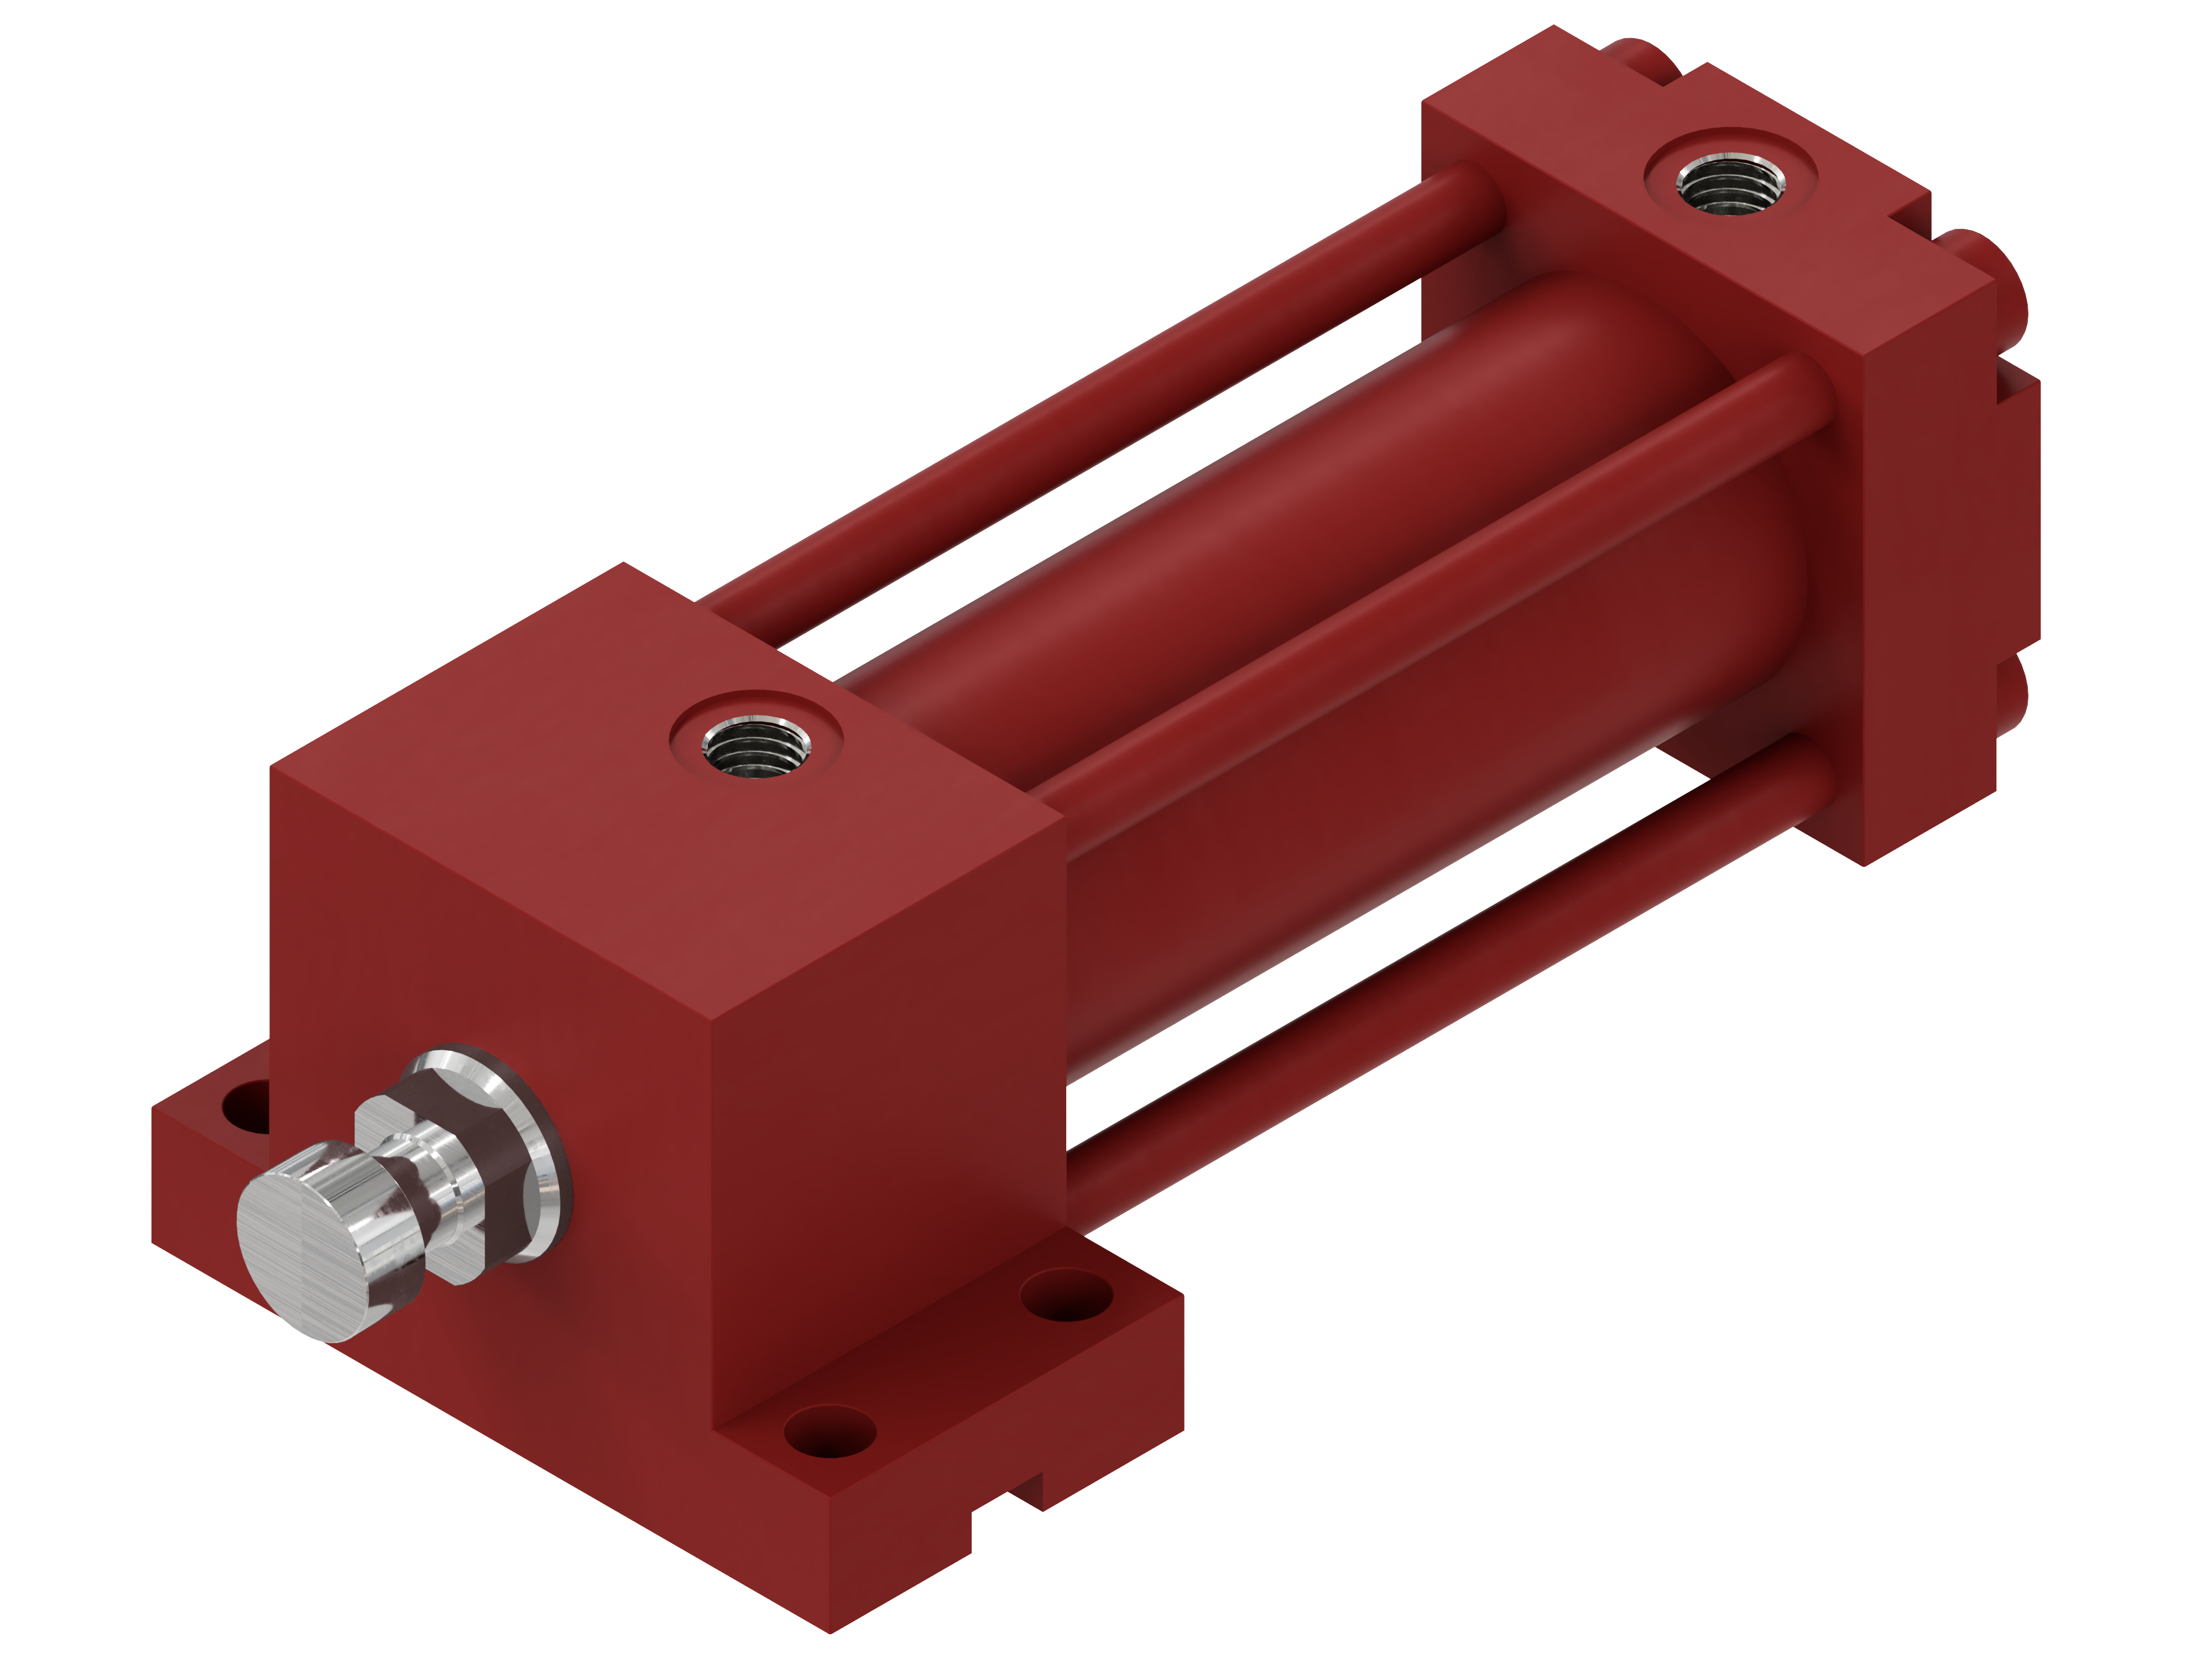 Hydraulic cylinder, double acting, HVB serie - Mounting by low head lugs